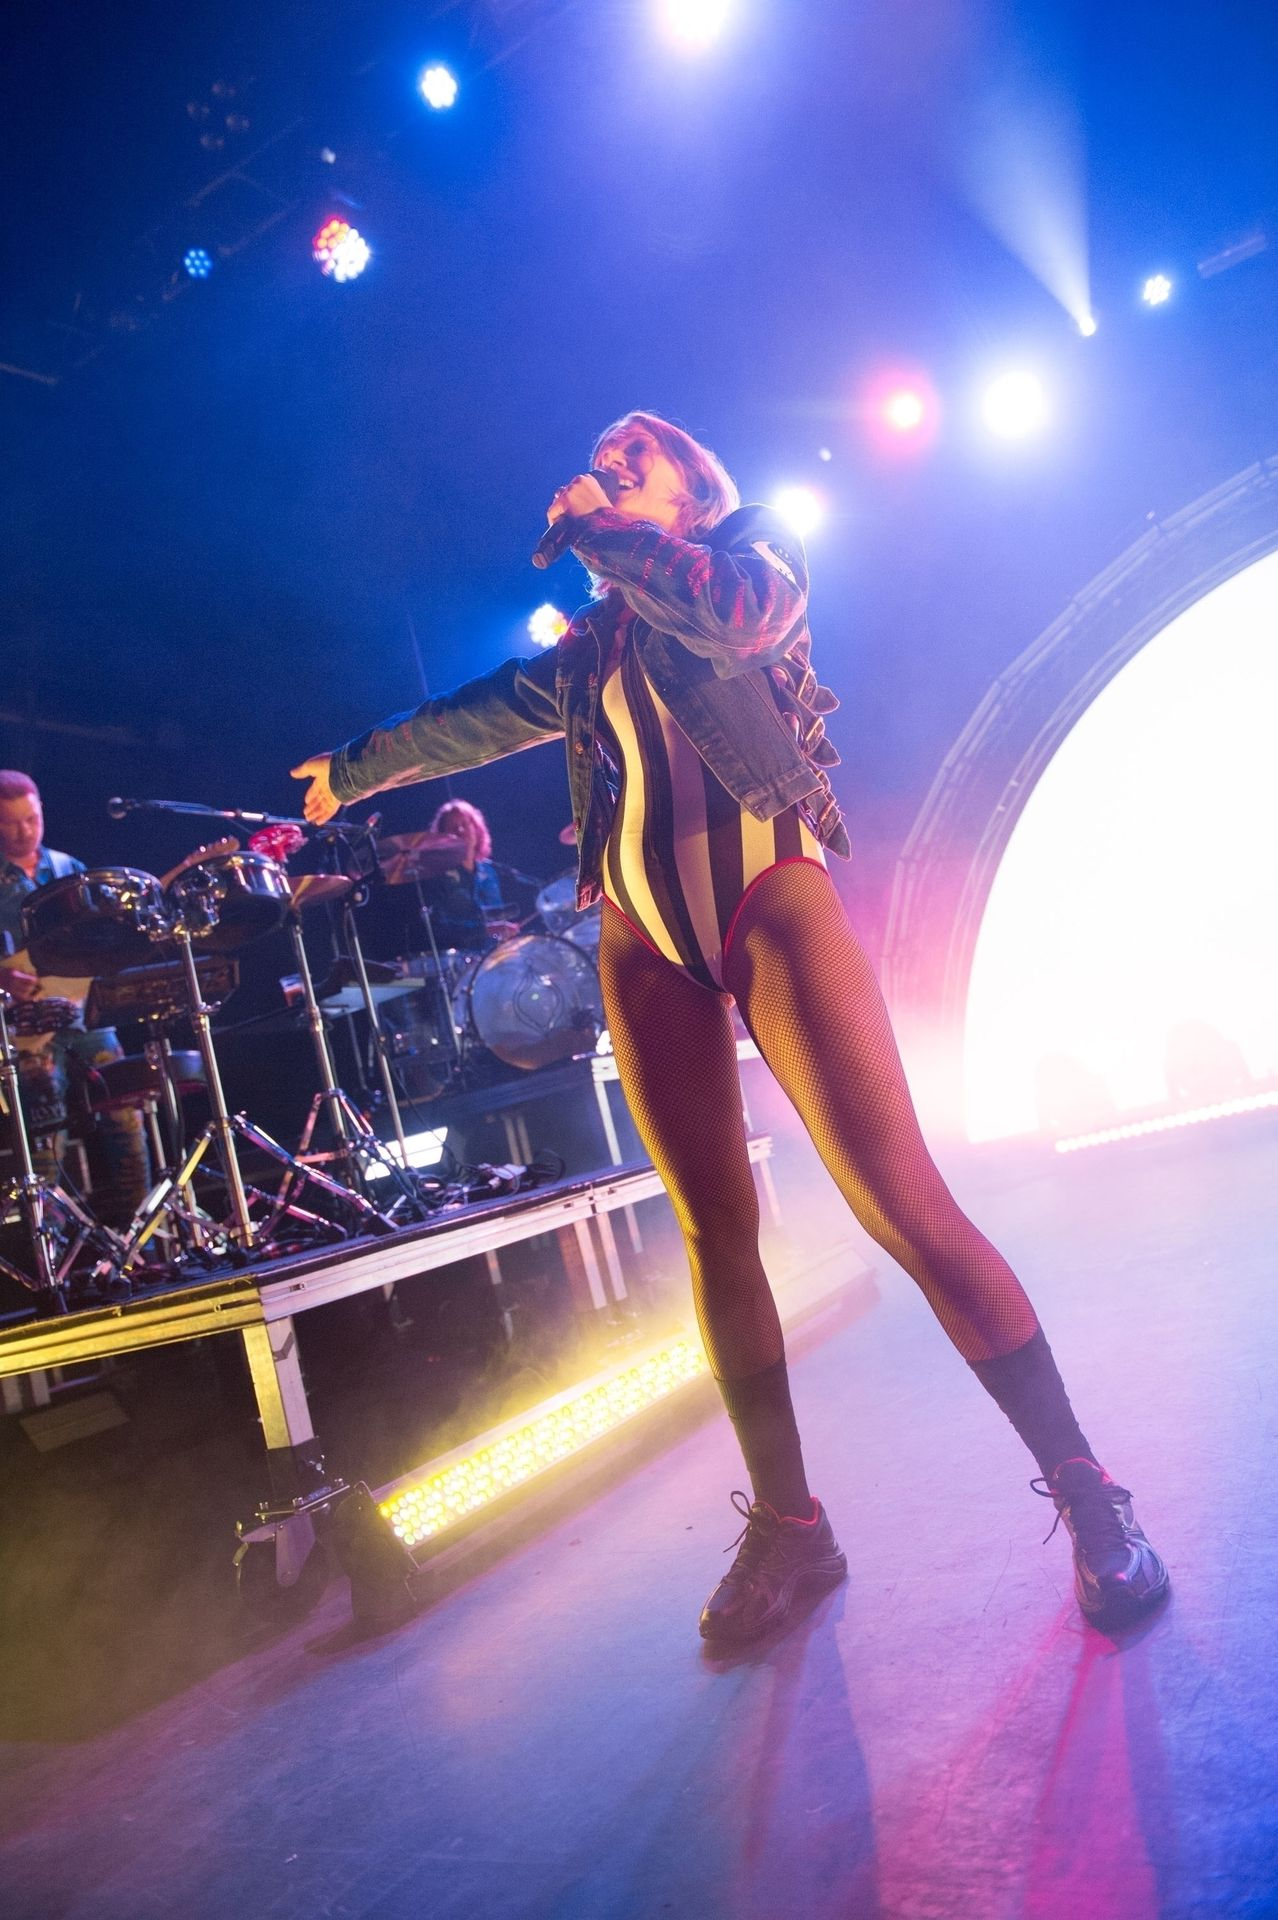 Tove Lo Is In Concert Performing Live At O2 Forum Kentish Town In London 0036